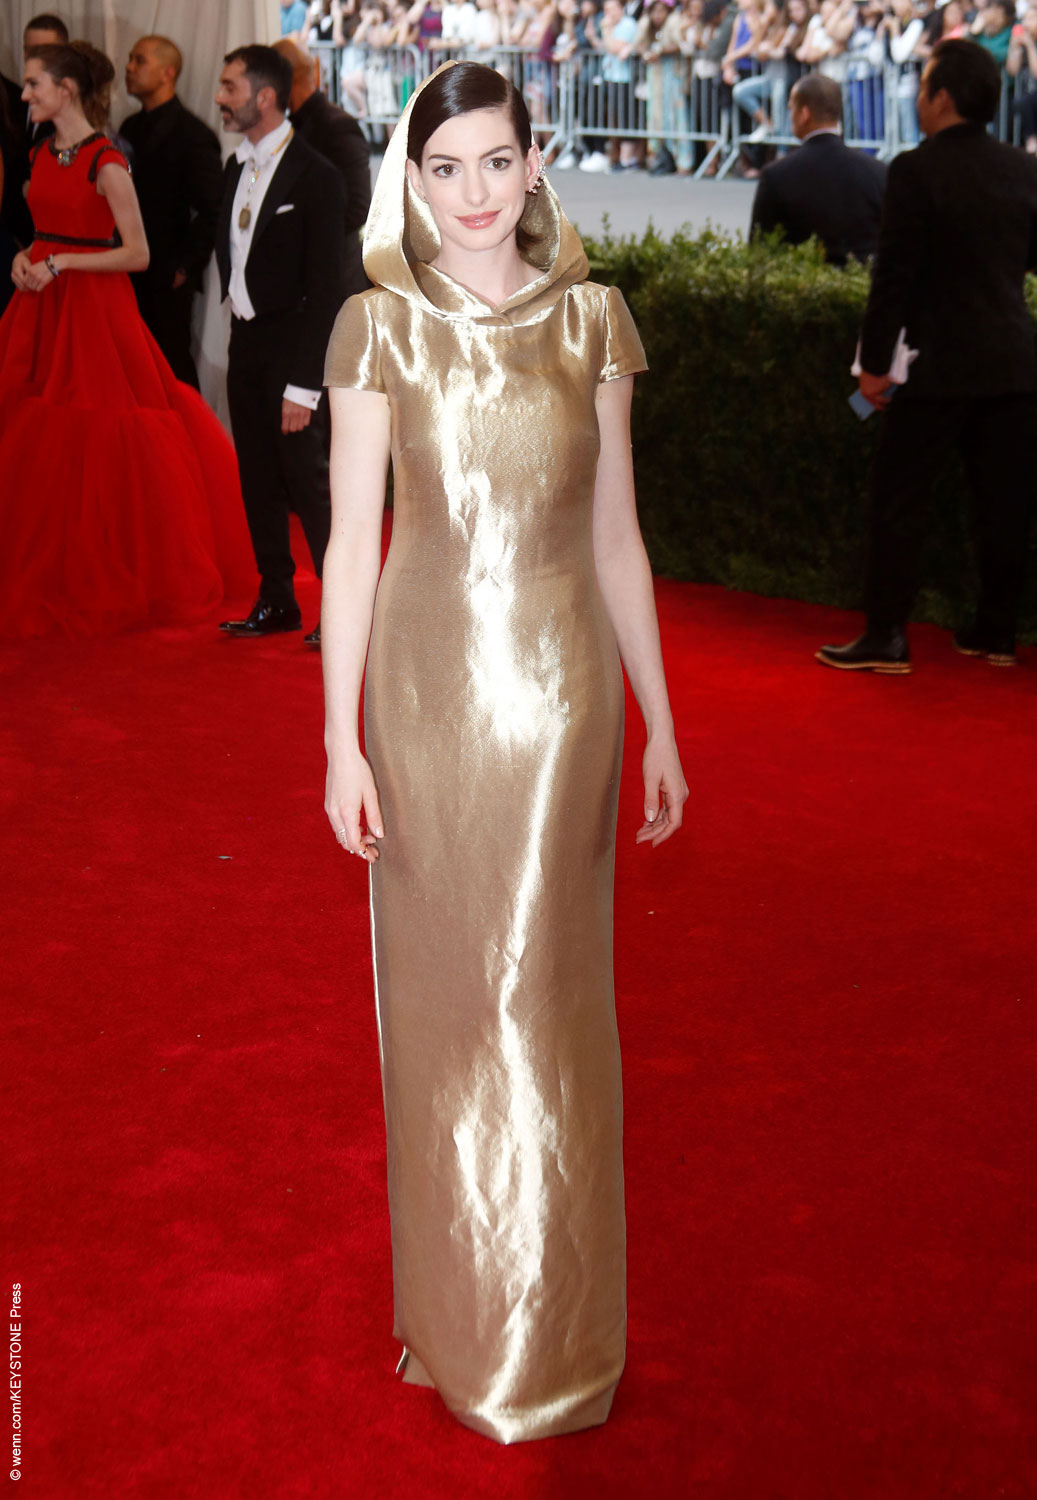 Anne Hathaway walked the red carpet with her husband sporting an interesting look. The brunette beauty donned a sleek gold Ralph Lauren gown, topped off with a Little Red Riding Hood style hood. The dress, made out of metal fibers, clung to her slender frame and looked as though it could be all the rage in a […]